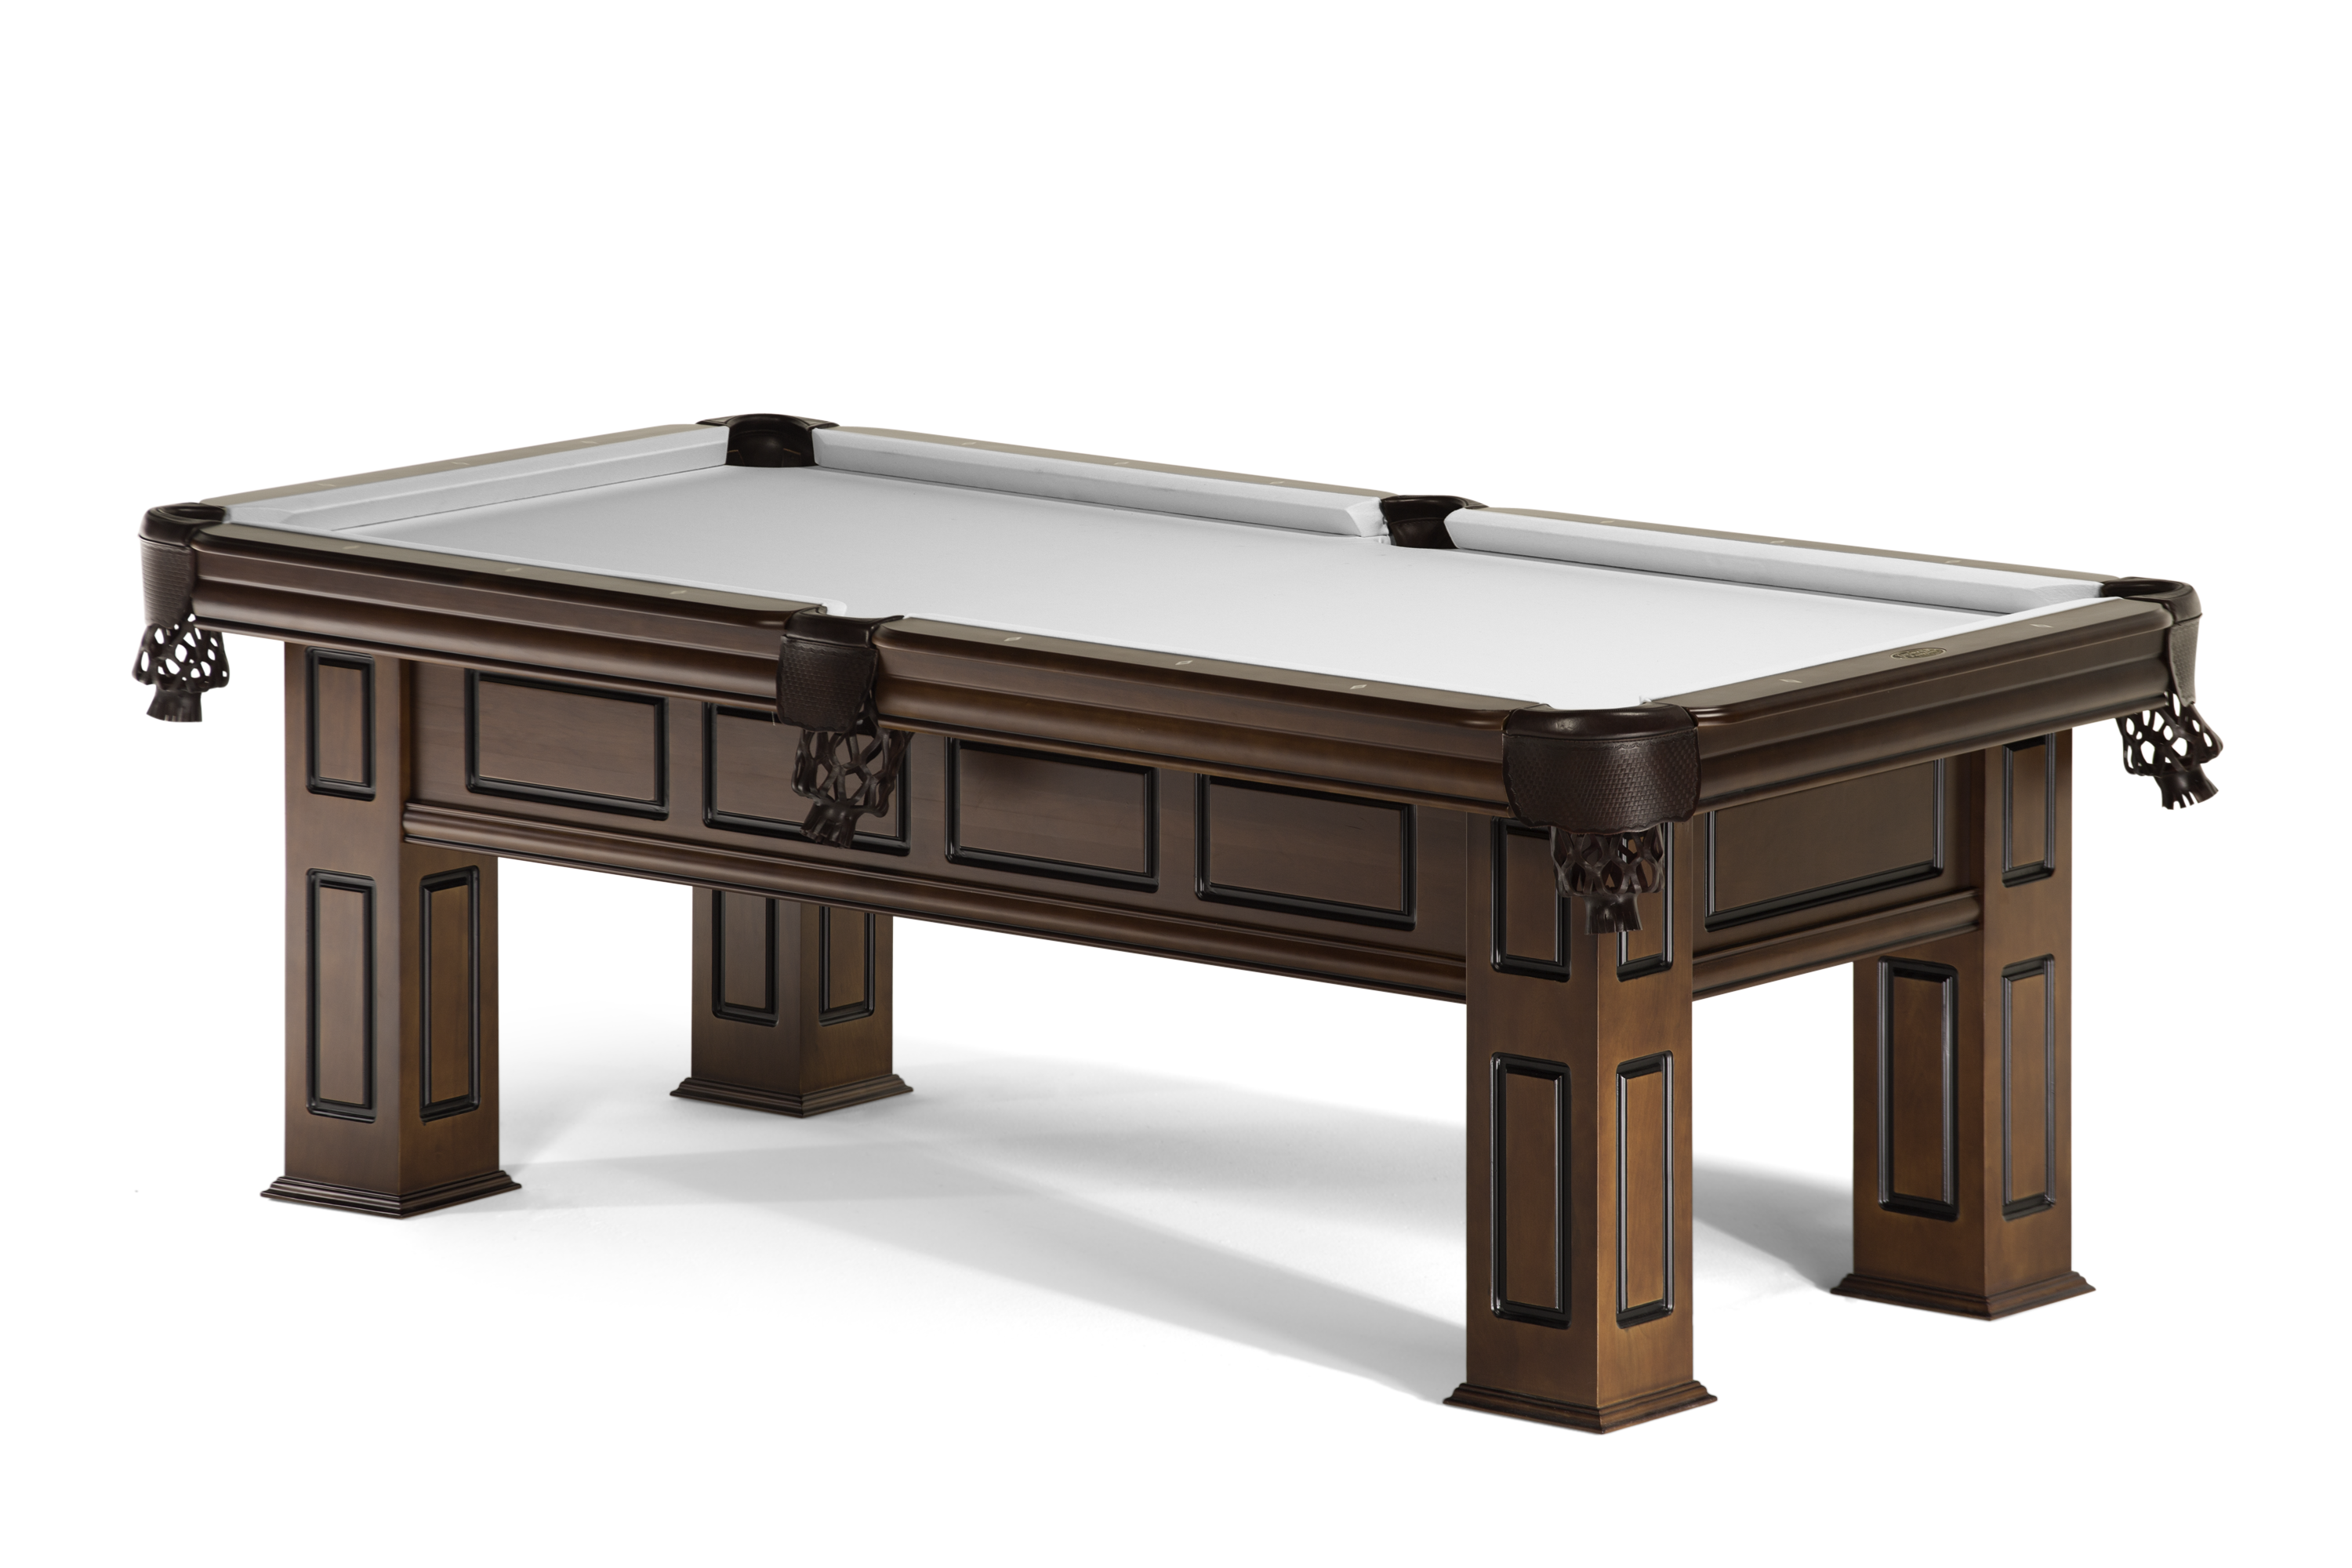 Spencer Marston S Arlington Is A Solid Hardwood Pool Table Whose Timeless Design Conveys Strength And Durability Stained In Hand Rubbed Antique Pecan